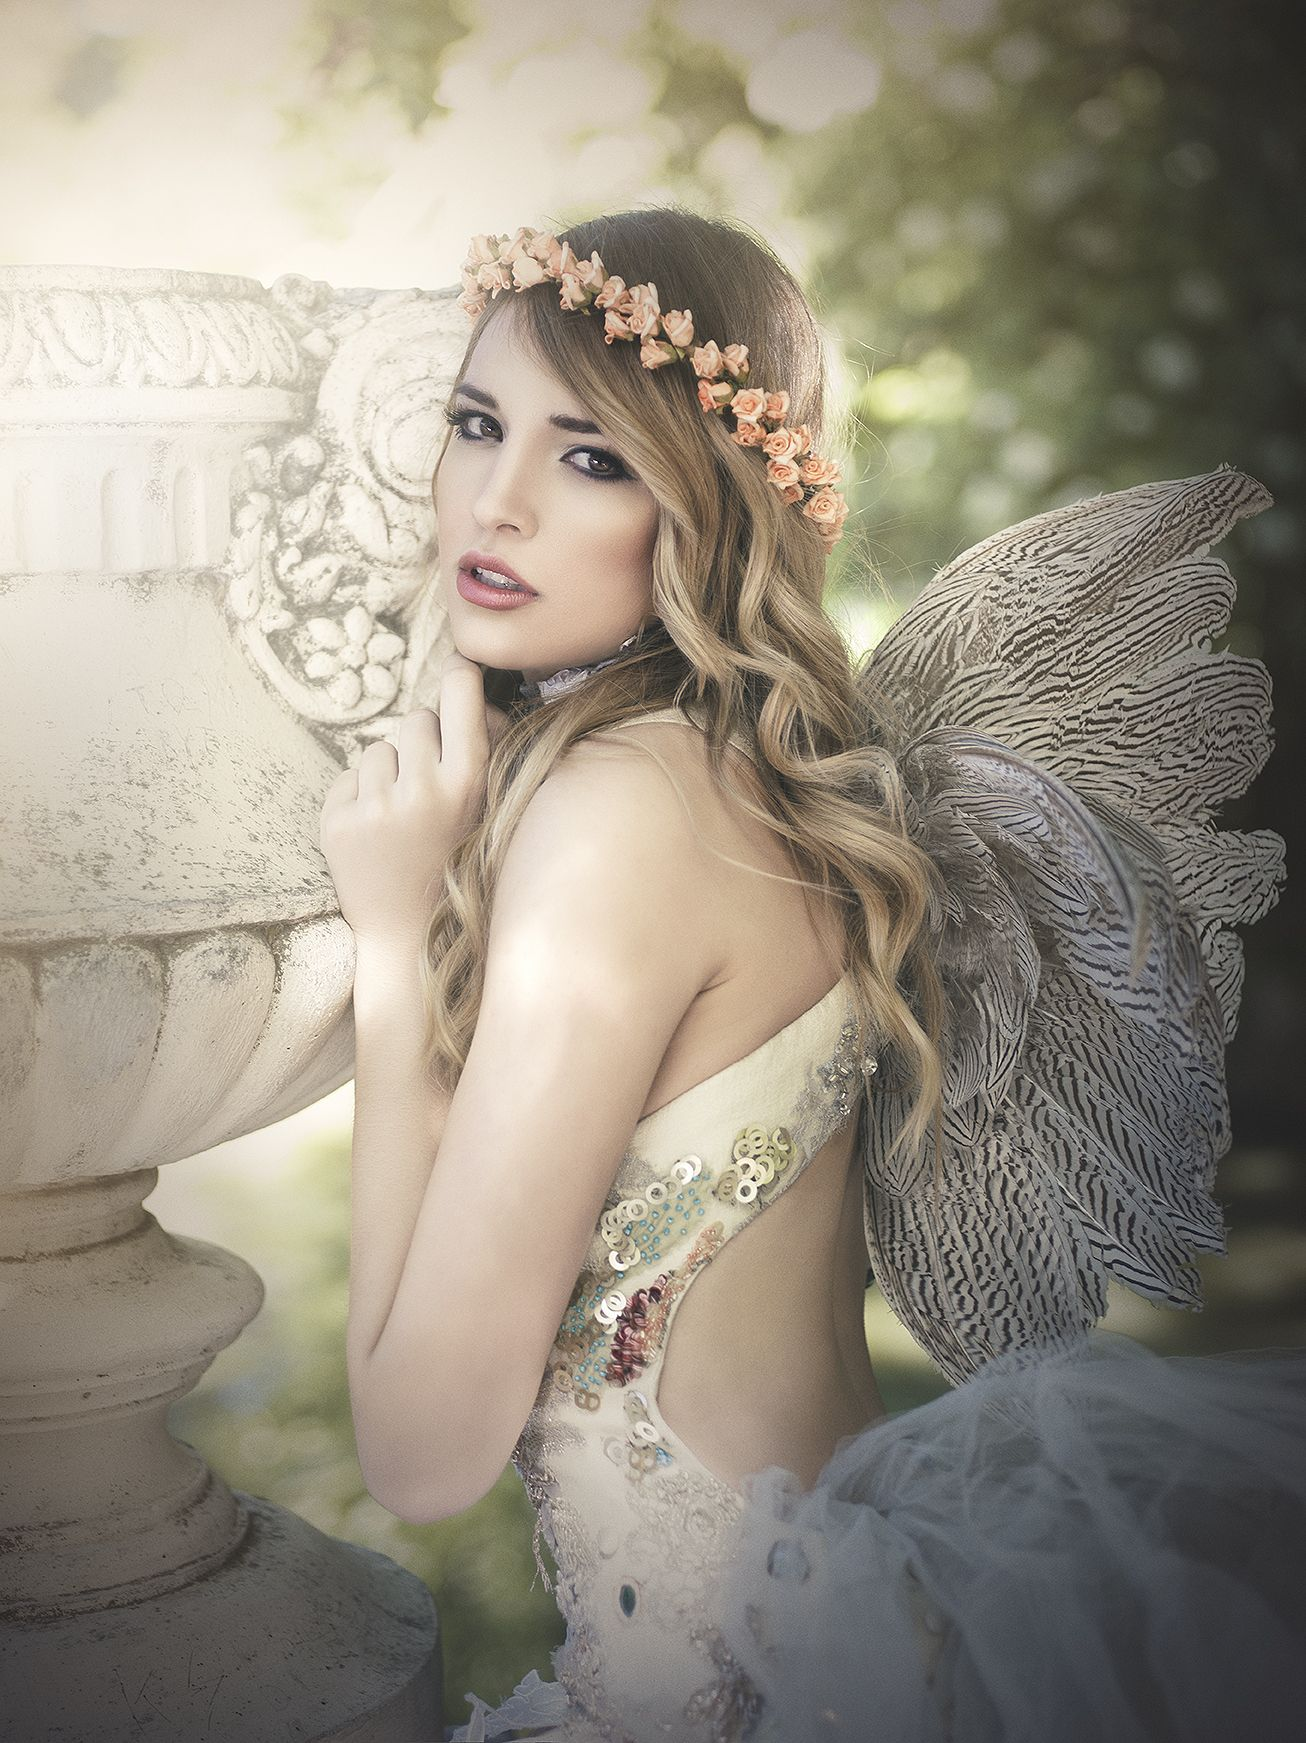 Angel • Rebeca Saray